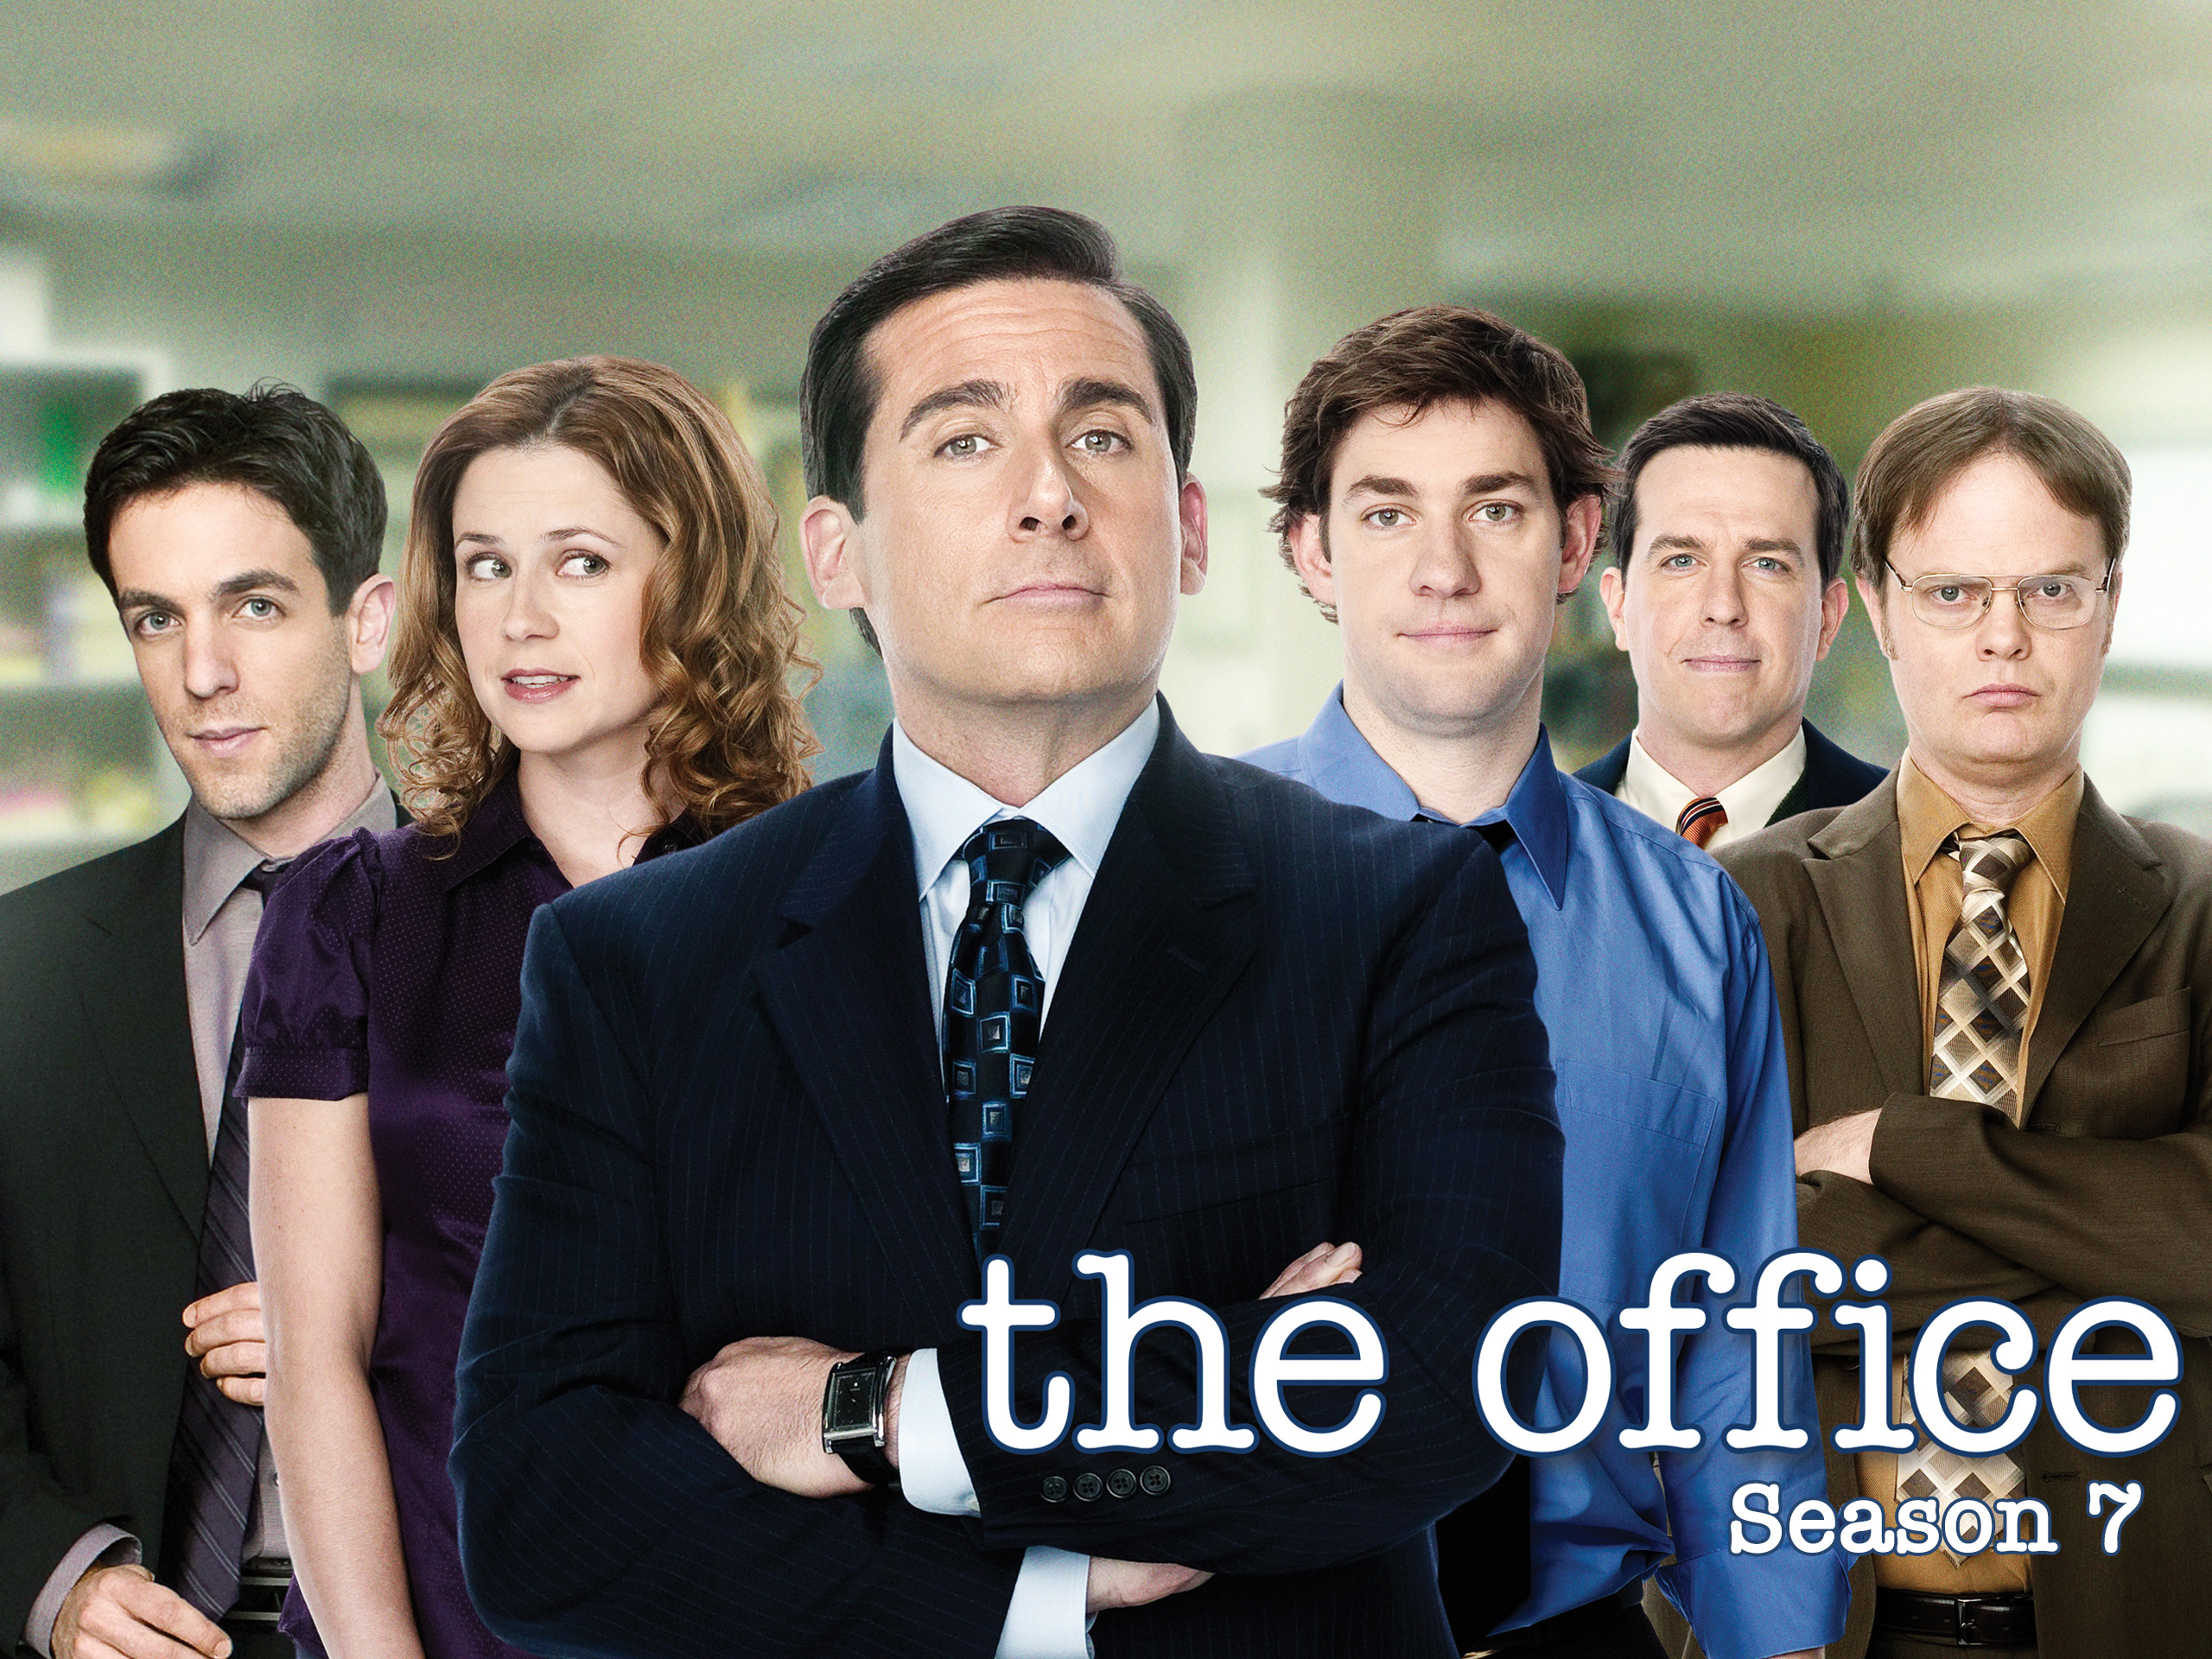 Top 10 Episodes Of The Office Season 2, Ranked According To IMDb